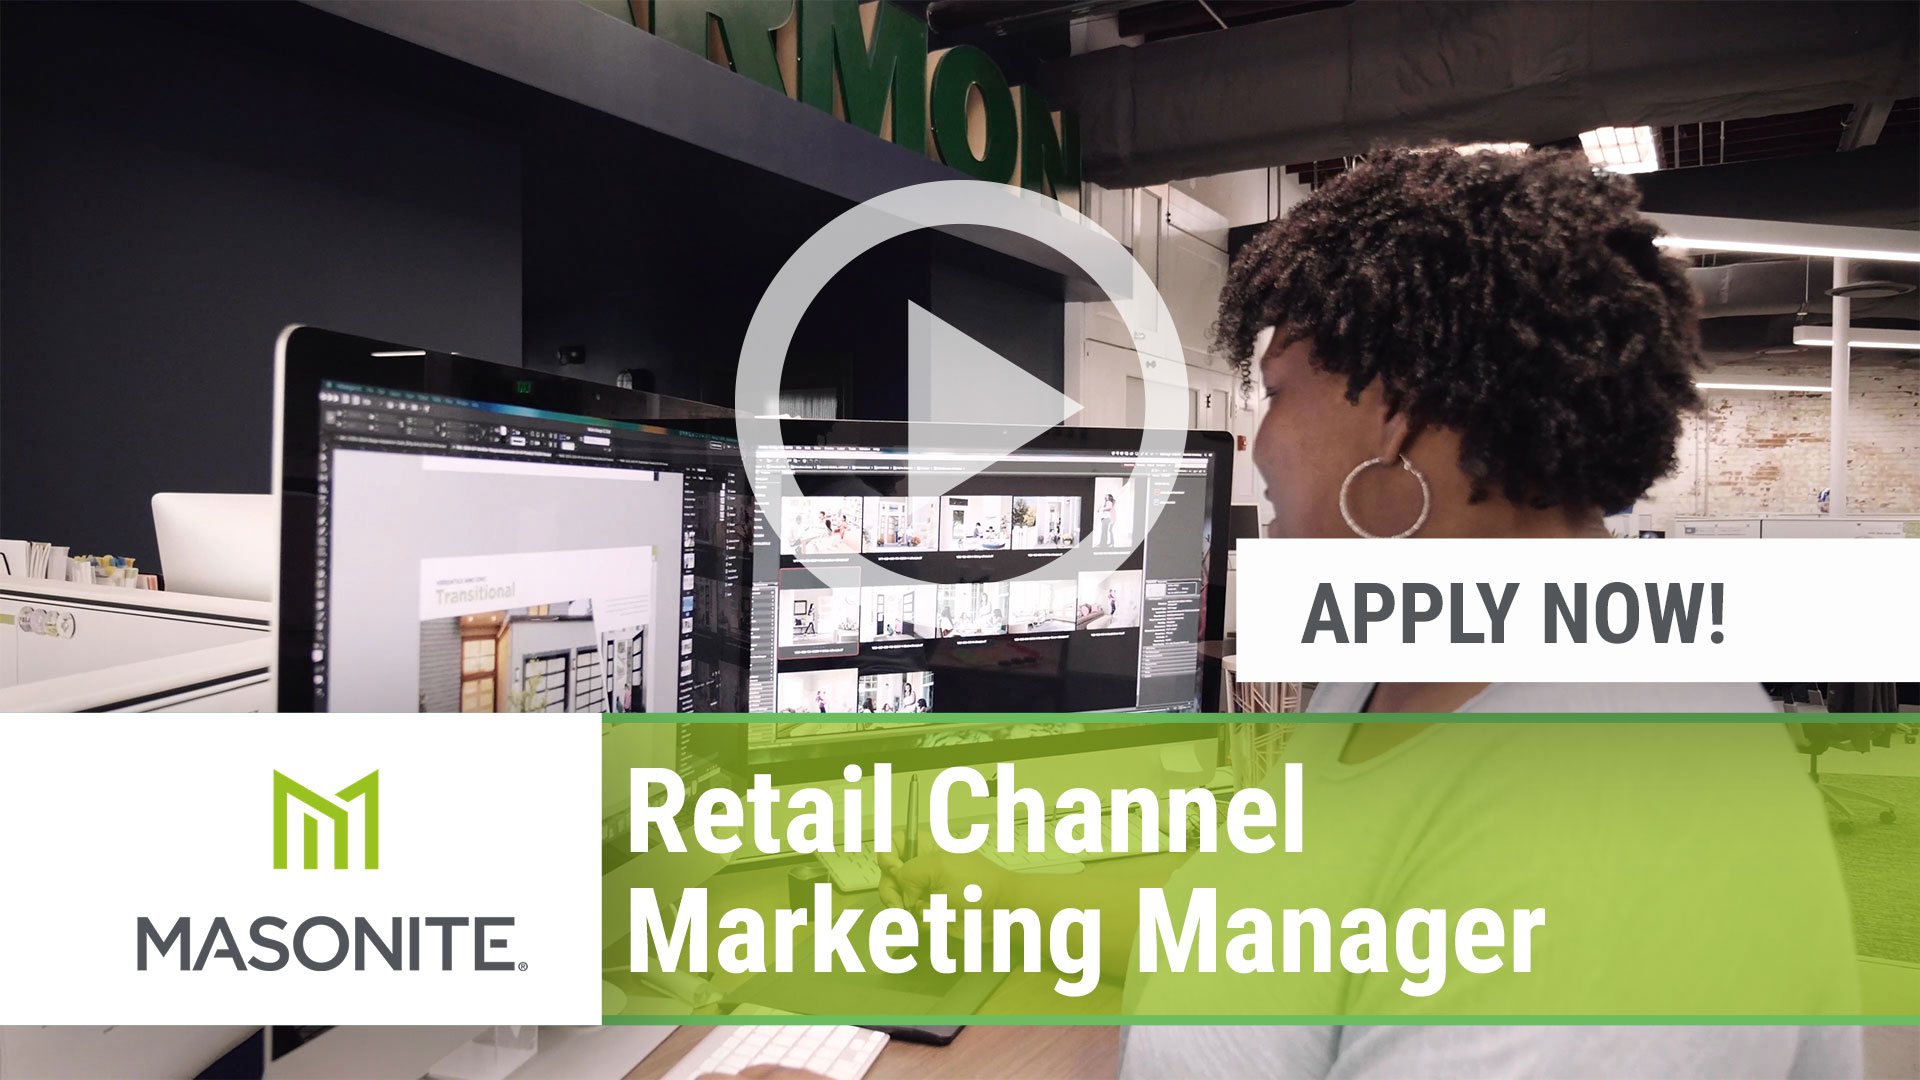 Watch our careers video for available job opening Retail Channel Marketing Manager in Tampa, FL, USA